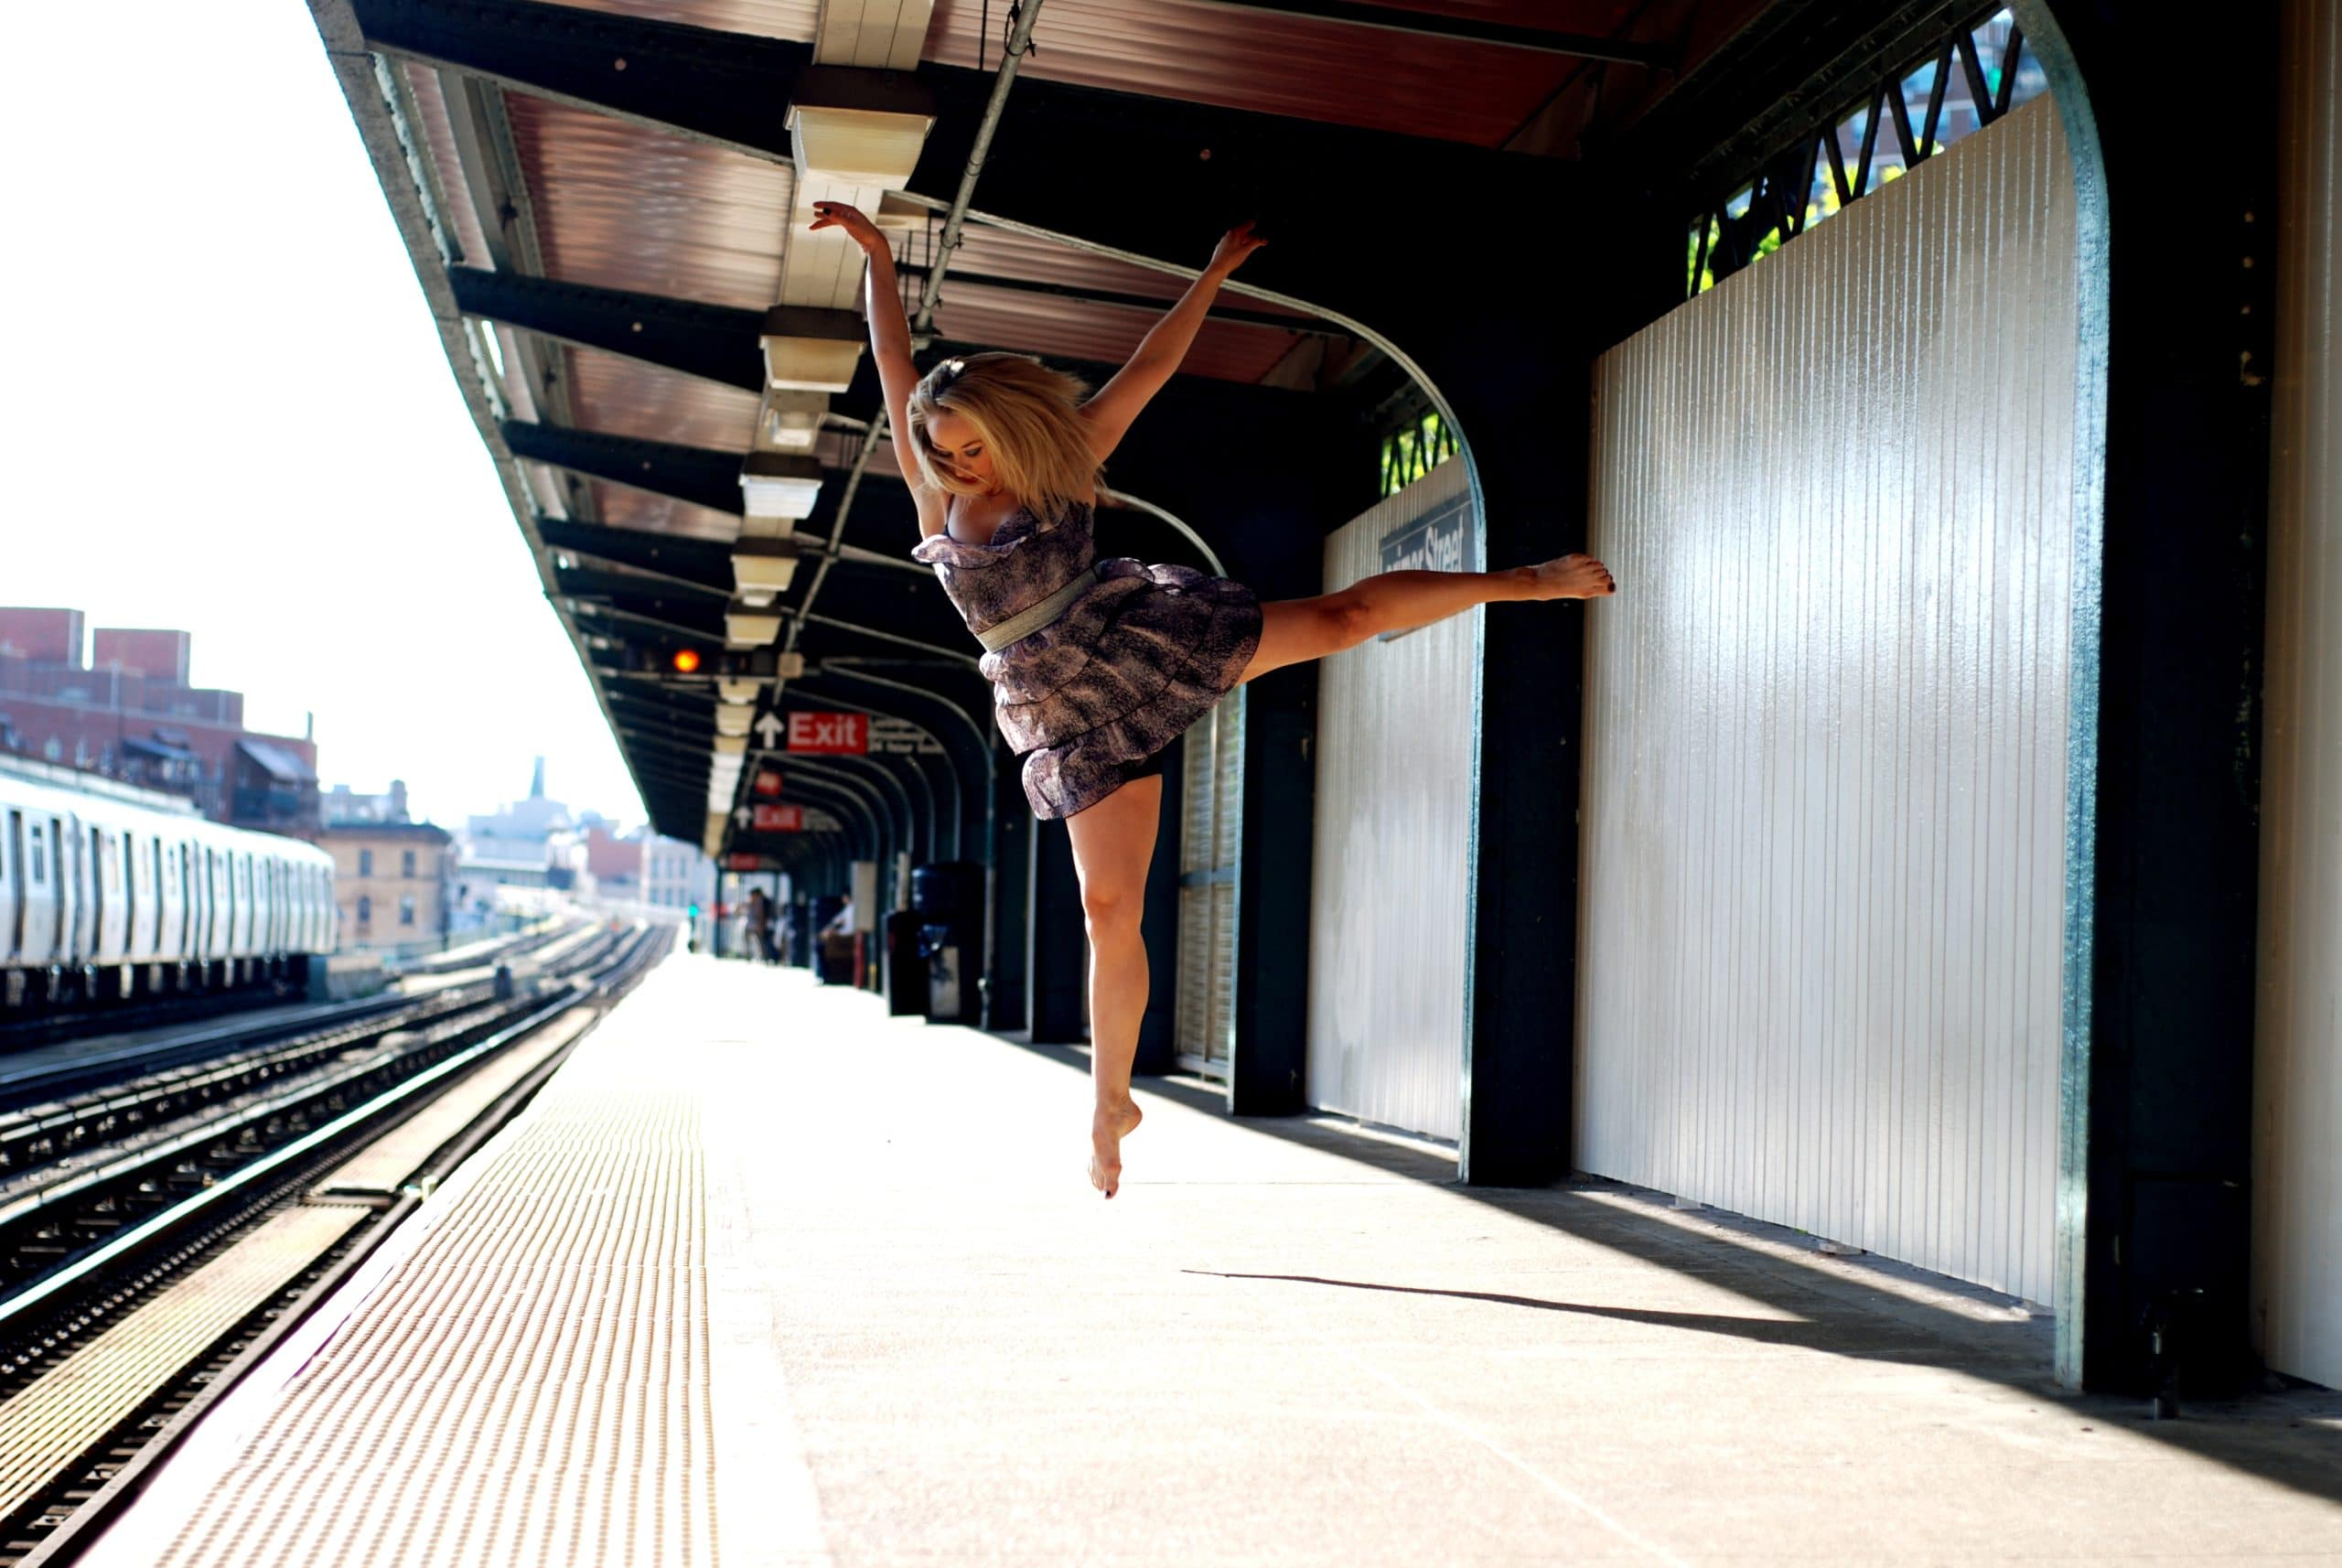 Dancer Eileen McClory in a graceful outstretched jump pose, taken on an empty train platform. Photo Credit Molly Craycroft